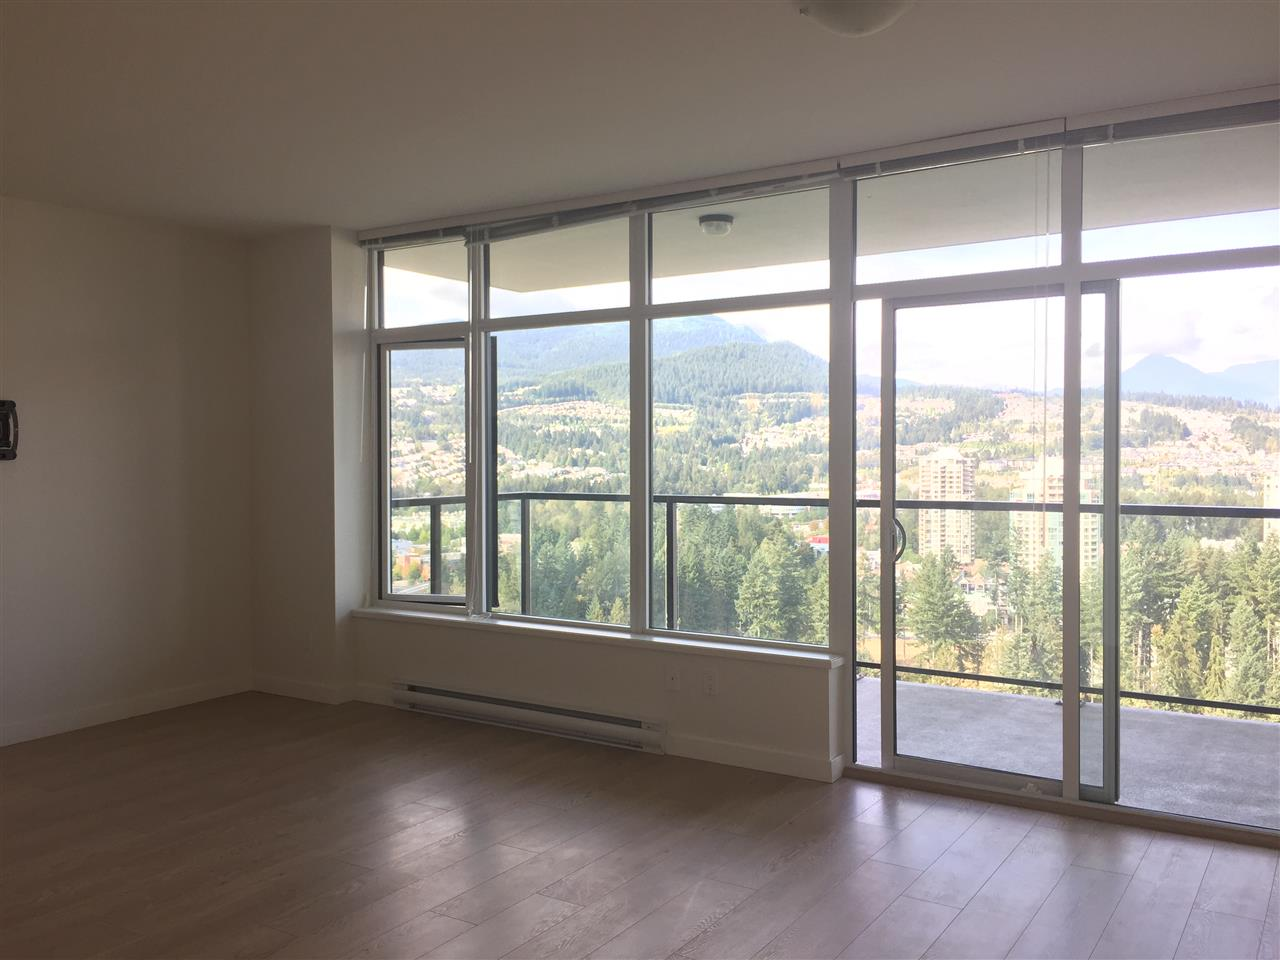 Condo Apartment at 3207 3080 LINCOLN AVENUE, Unit 3207, Coquitlam, British Columbia. Image 7